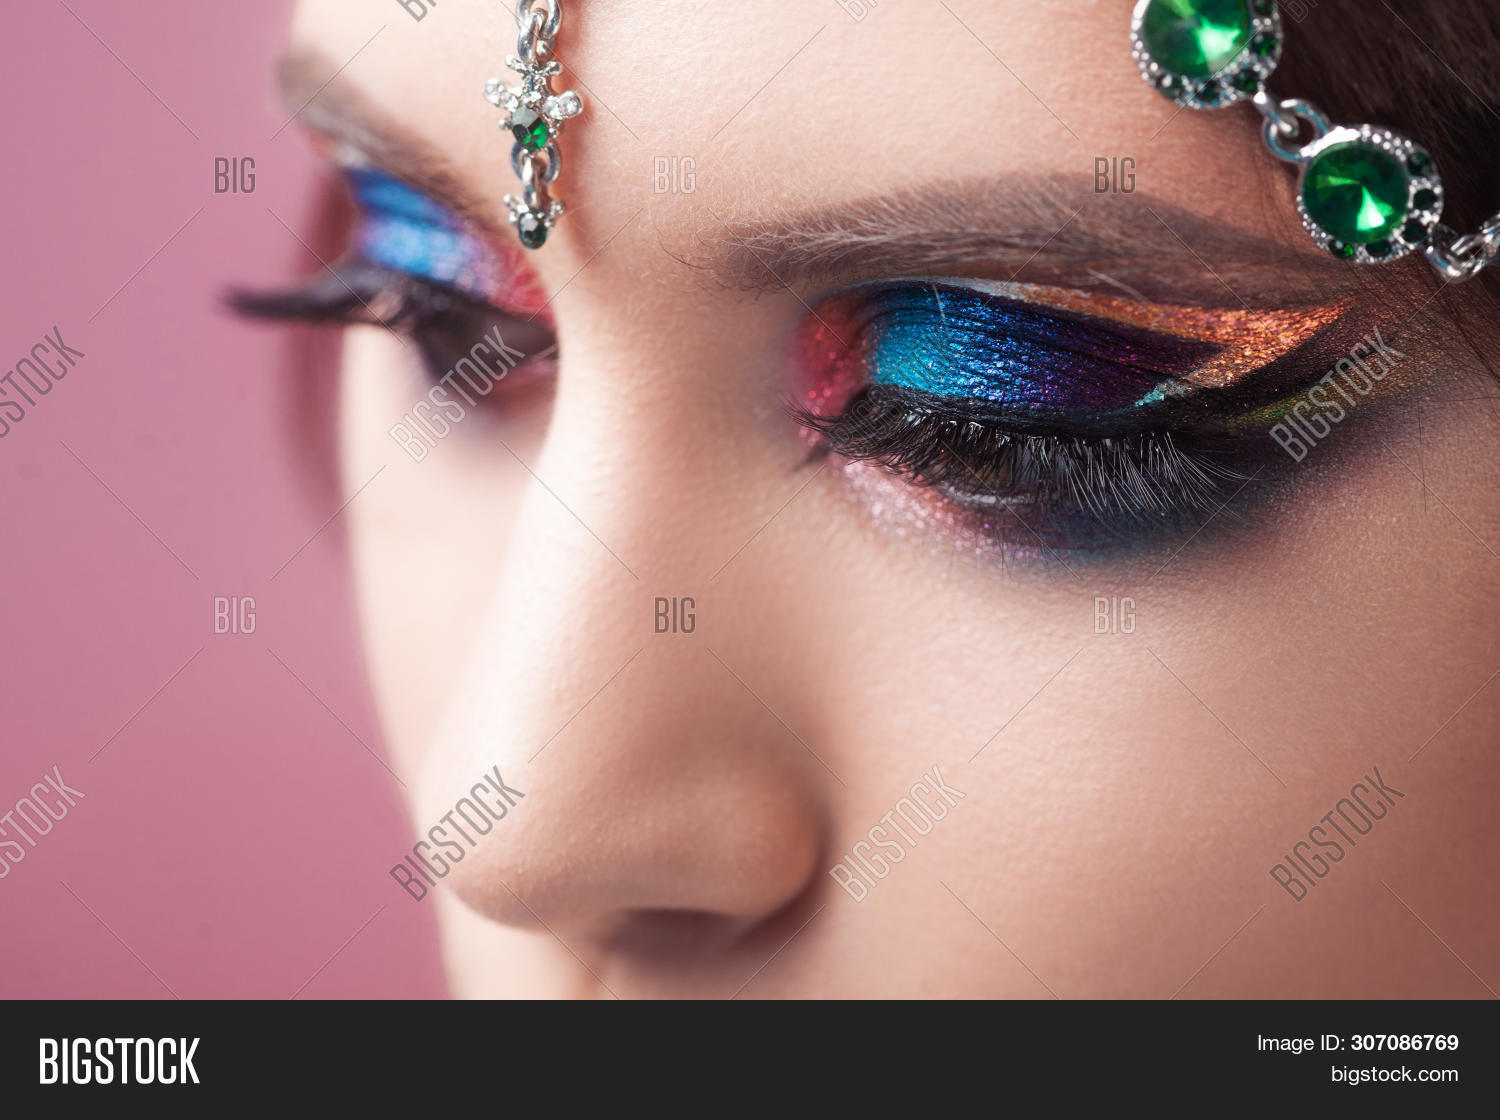 arabia,arabian,arabic,attractive,beautiful,beauty,bright,brunette,close-up,color,costume,culture,east,exotic,eye,fantasy,fashion,female,girl,glamorous,golden,image,lady,lashes,luxury,makeup,oriental,pink,pretty,princess,queen,shadow,style,tale,woman,young